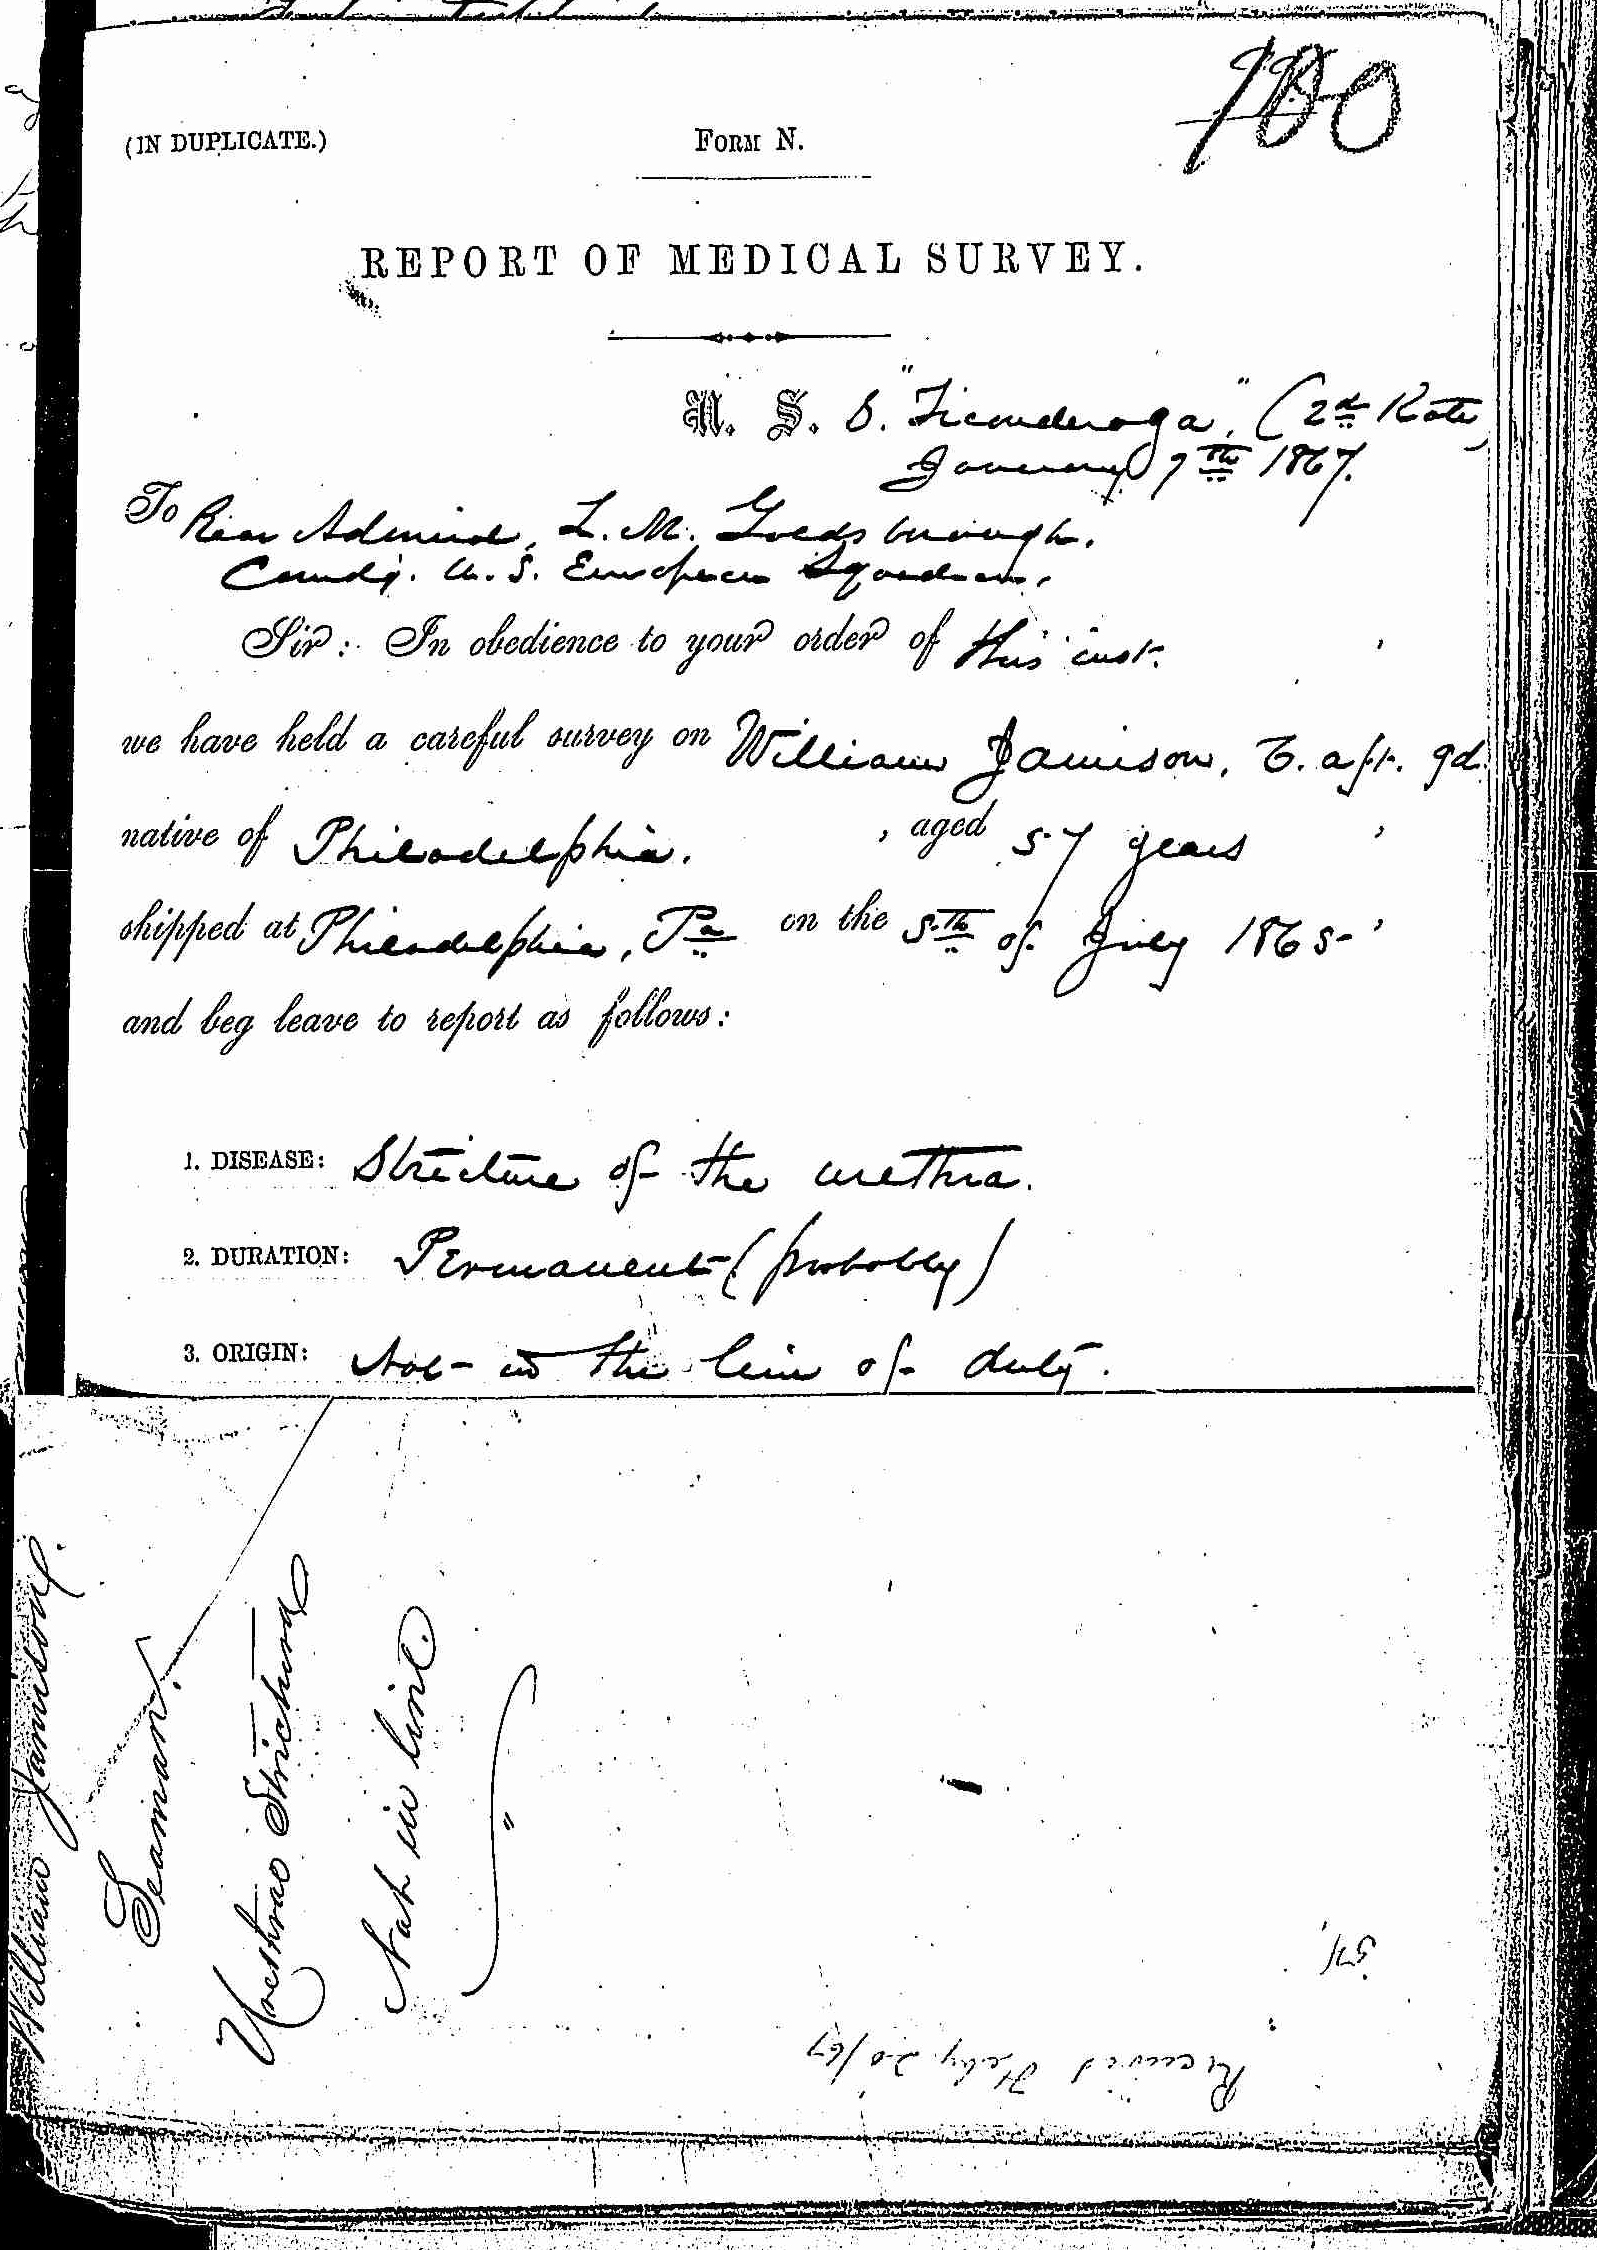 Entry for William Jamison (page 1 of 5) in the log Hospital Tickets and Case Papers - Naval Hospital - Washington, D.C. - 1866-68